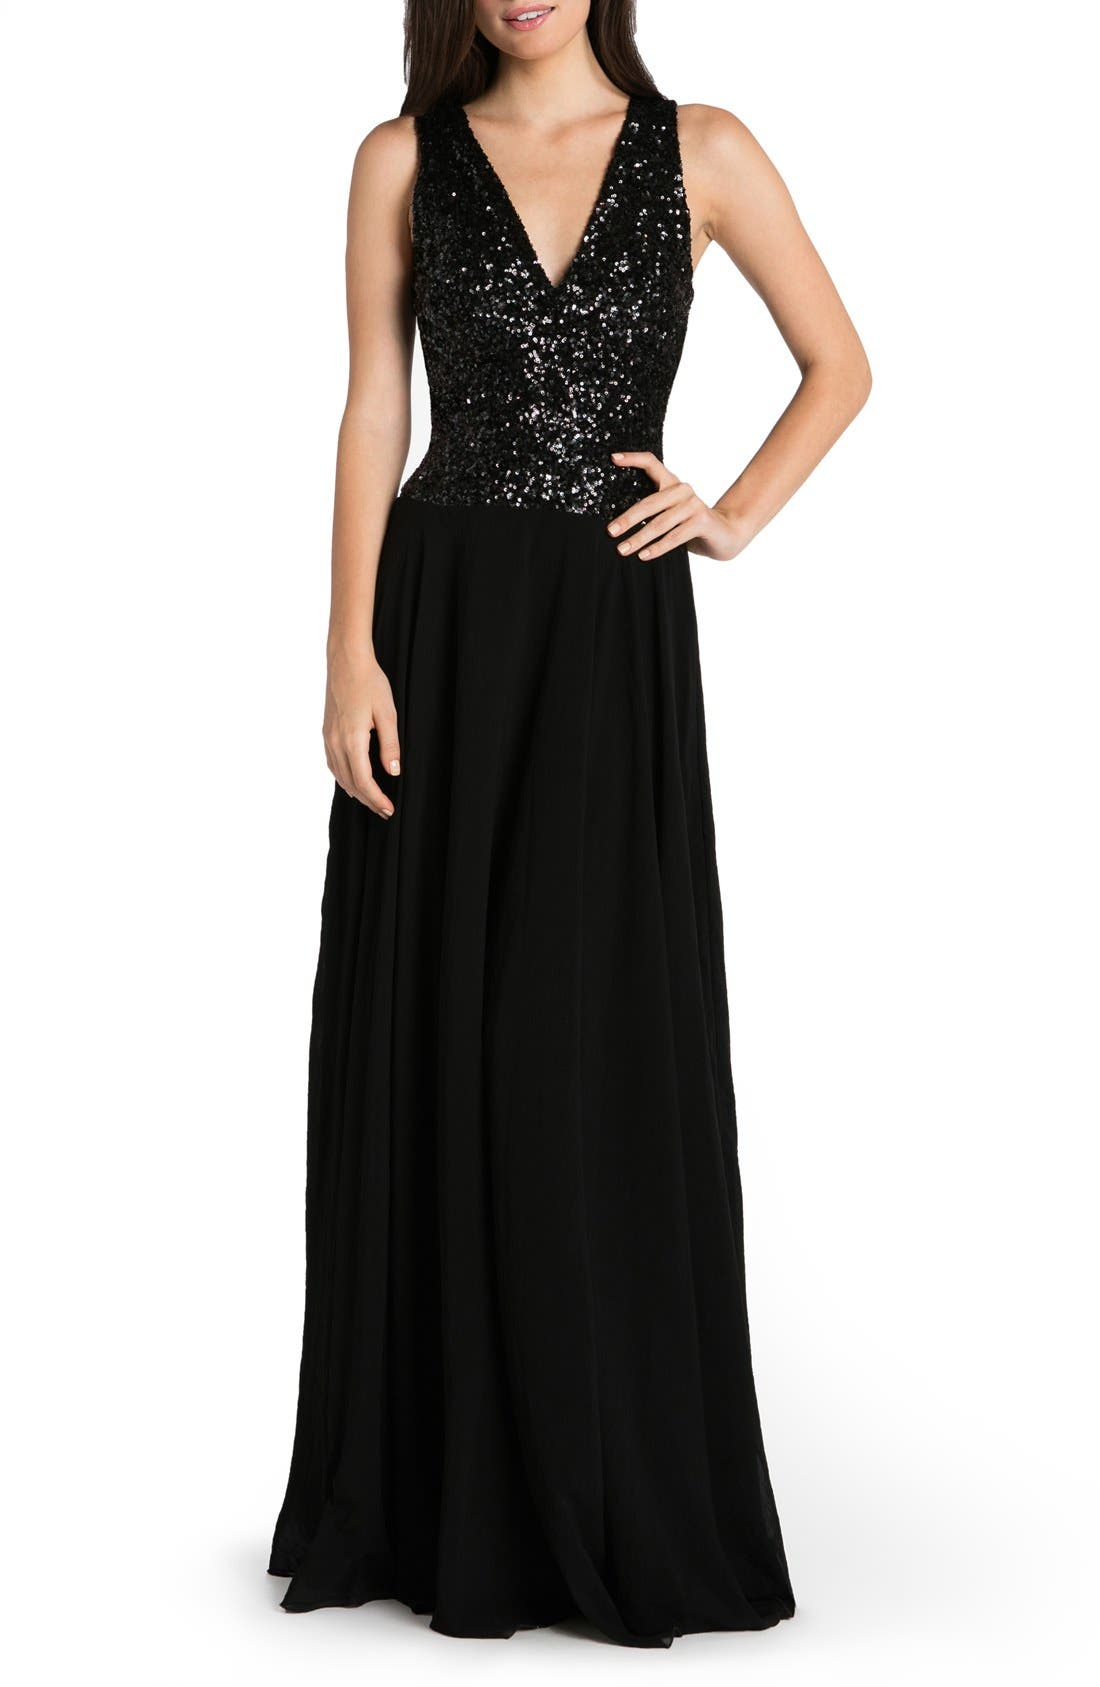 DRESS THE POPULATION Caroline Sequin & Chiffon Gown